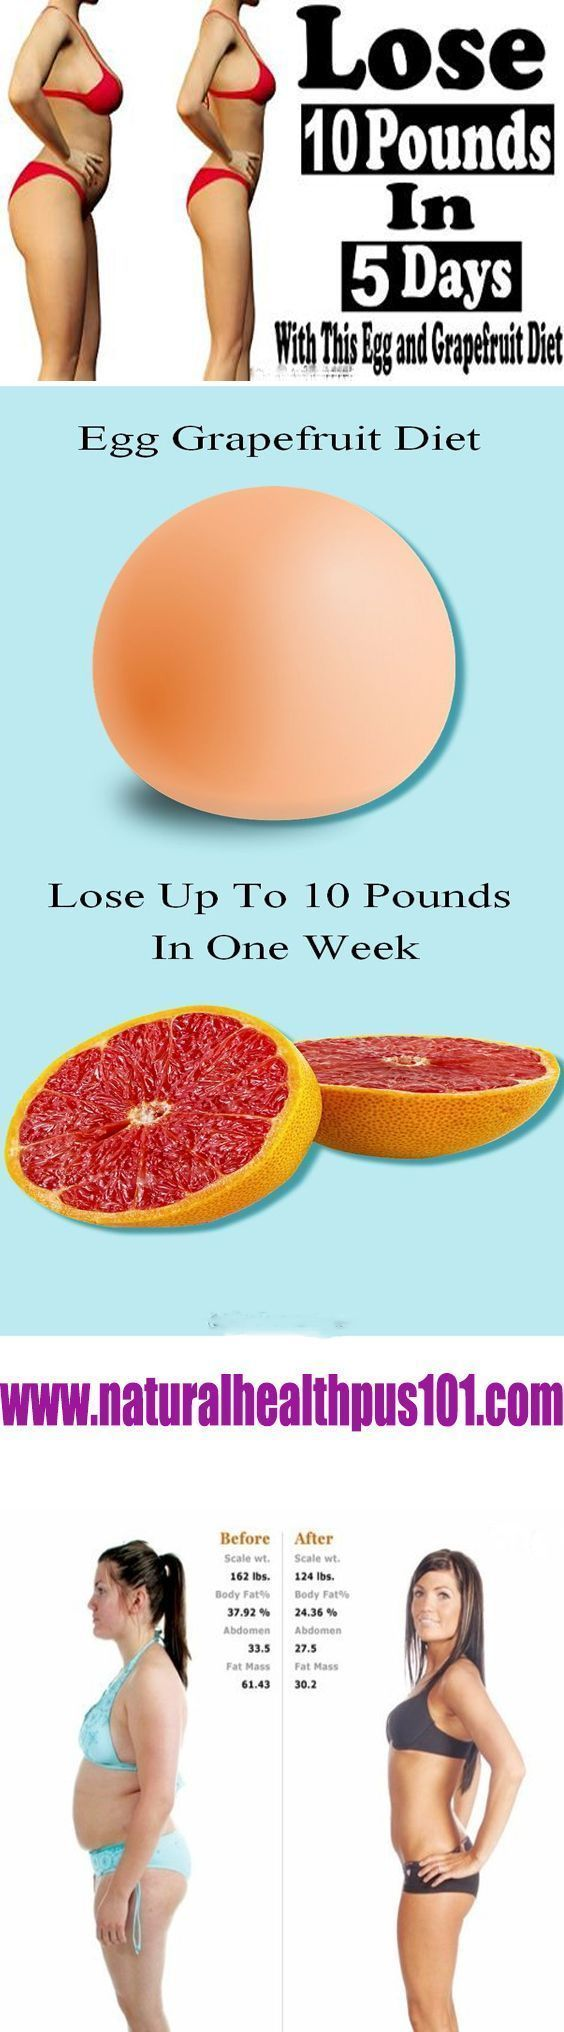 lose 10 pounds in 3 days detox, how to lose 10 pounds in a week without  exercise, how to lose 10 pounds in 3 days, how to lose 20…